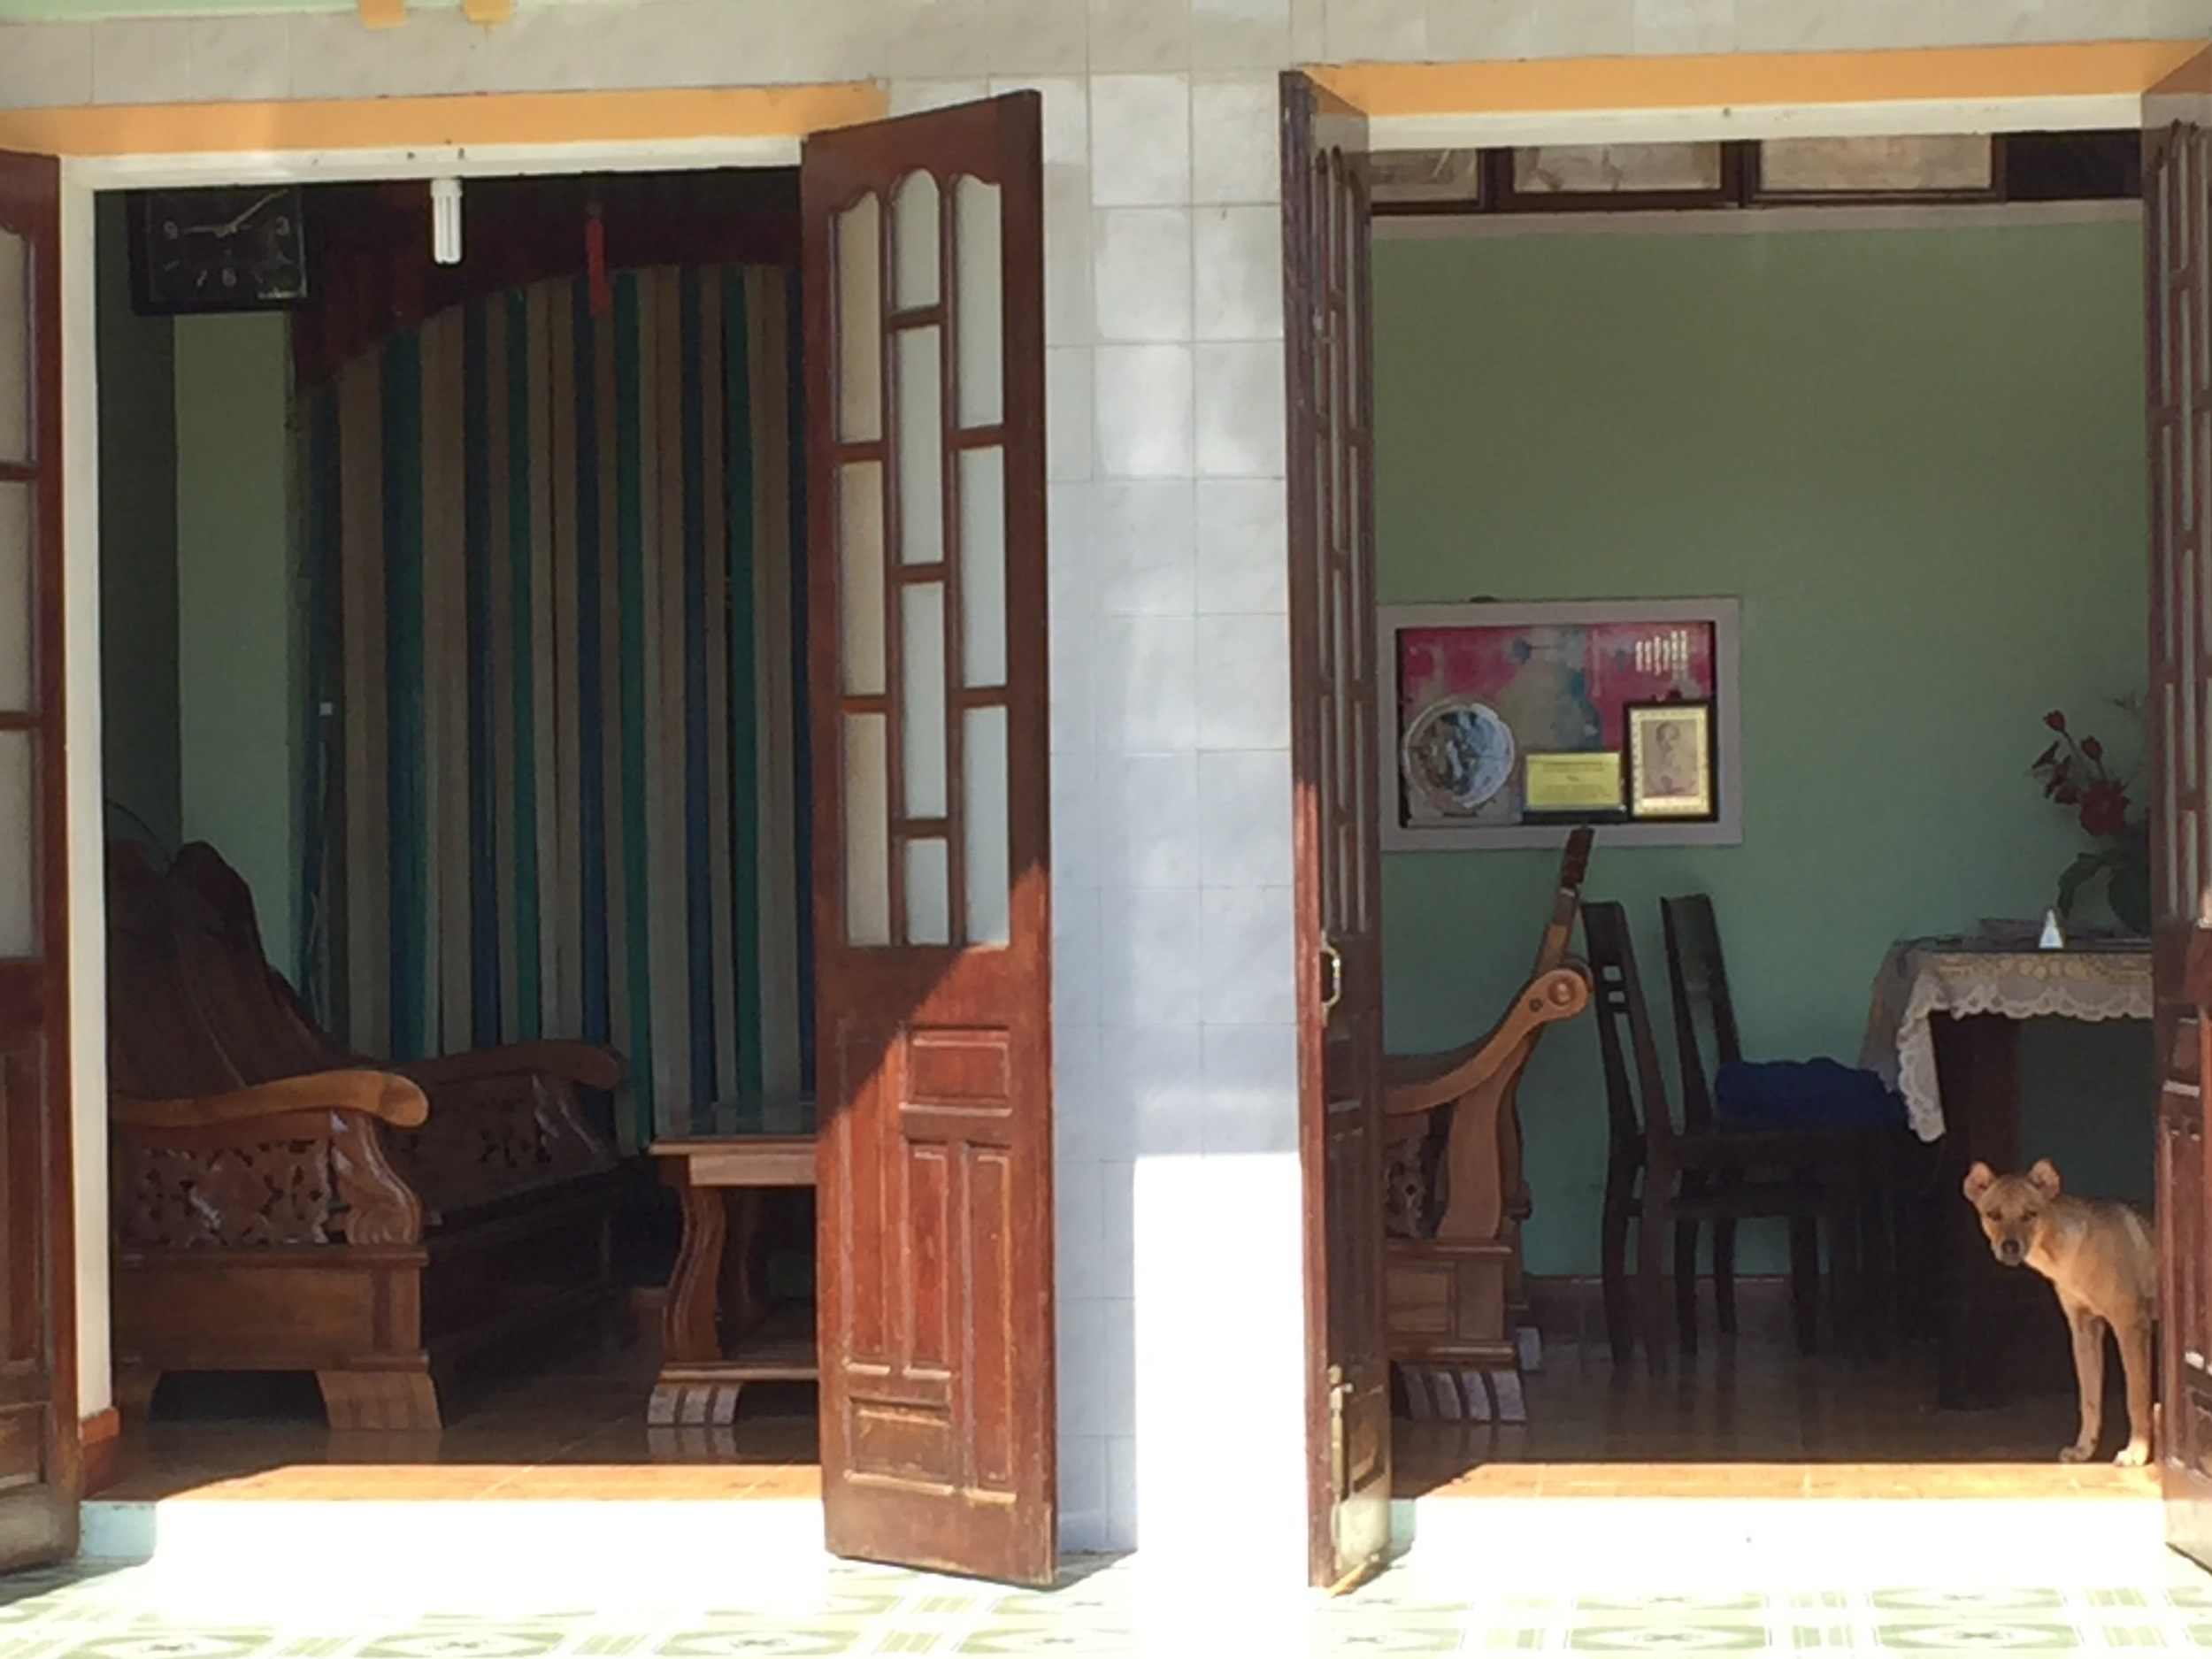 View into a country house outside of the city of Hoi An.